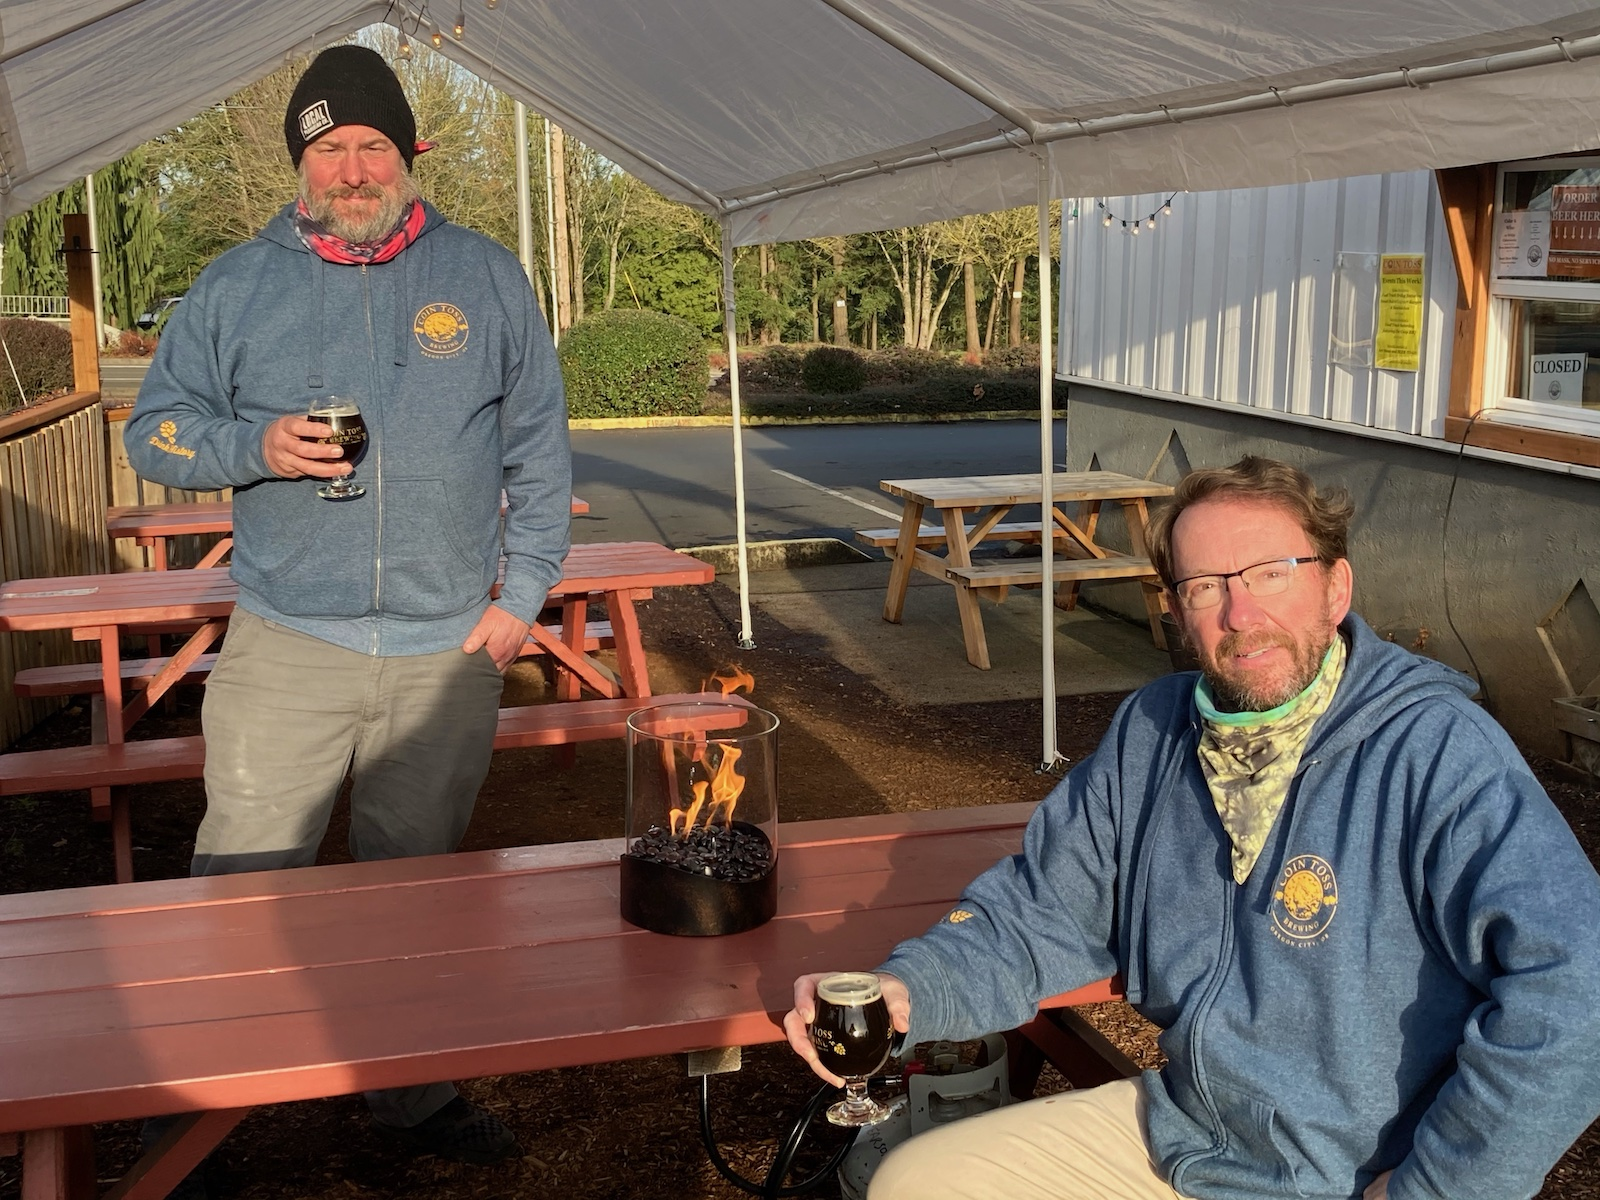 image of Chip Conlon (l) and Tim Hohl (r) courtesy of Coin Toss Brewing